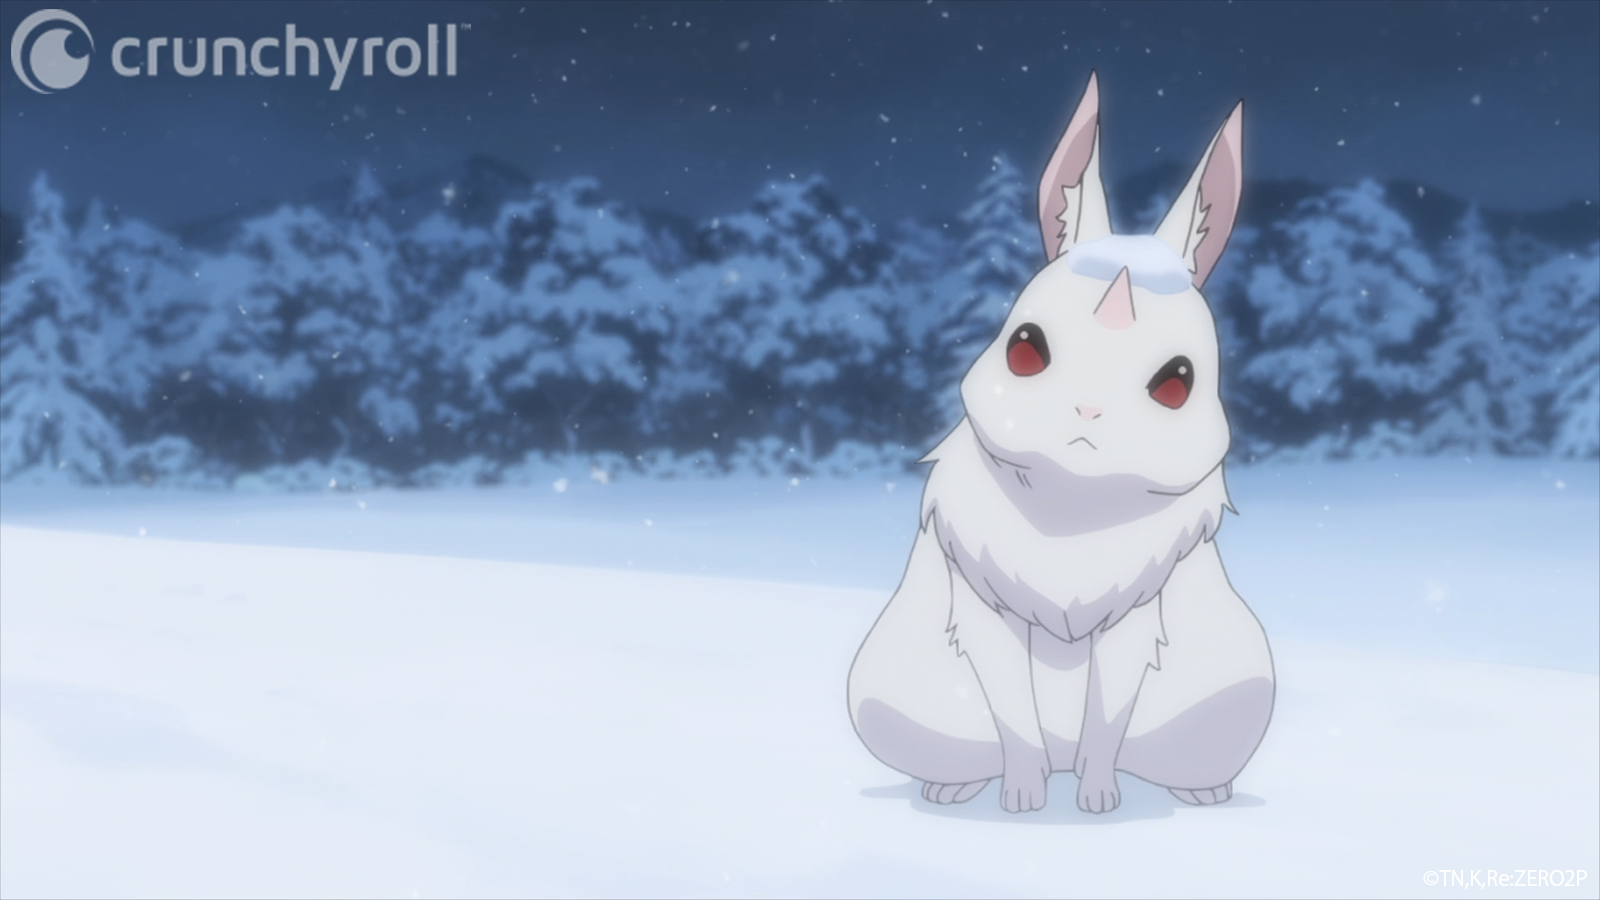 El Gran Conejo parece ser un conejito inofensivo con un cuerno saliendo de su frente en una escena del Episodio 33 de Re: ZERO -Starting Life in Another World-.